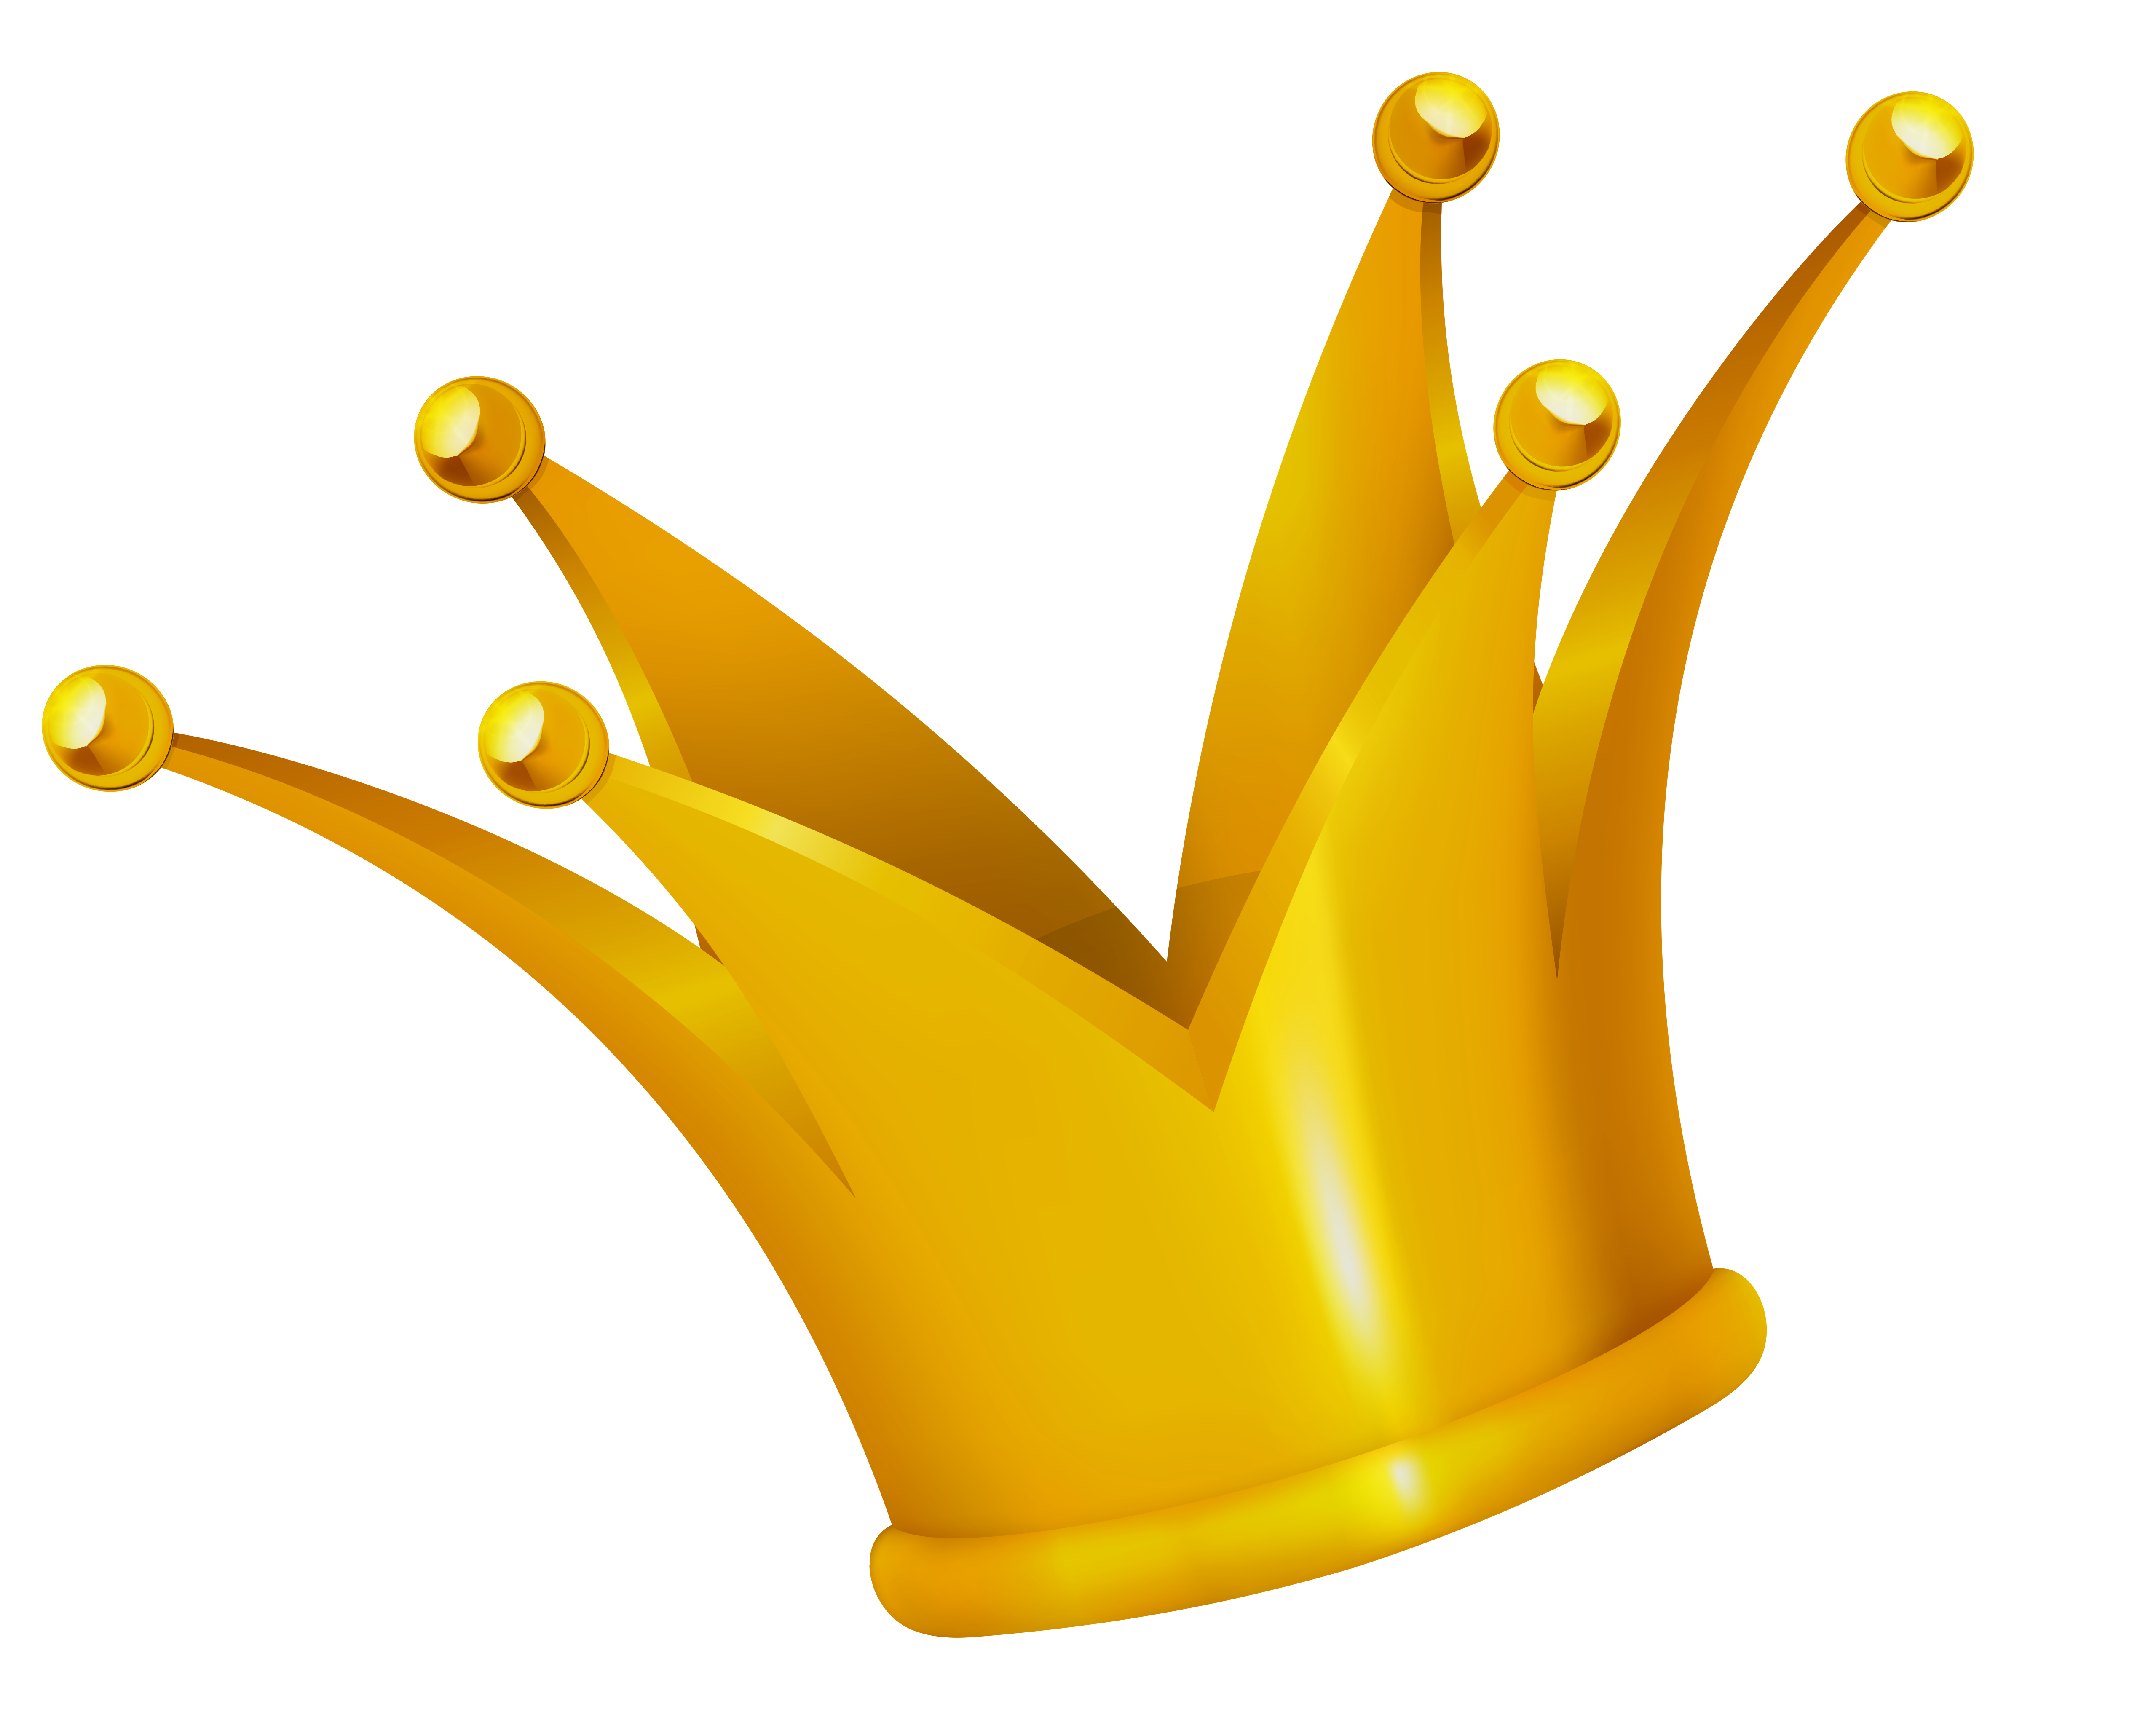 Gold Crown Png image #29920